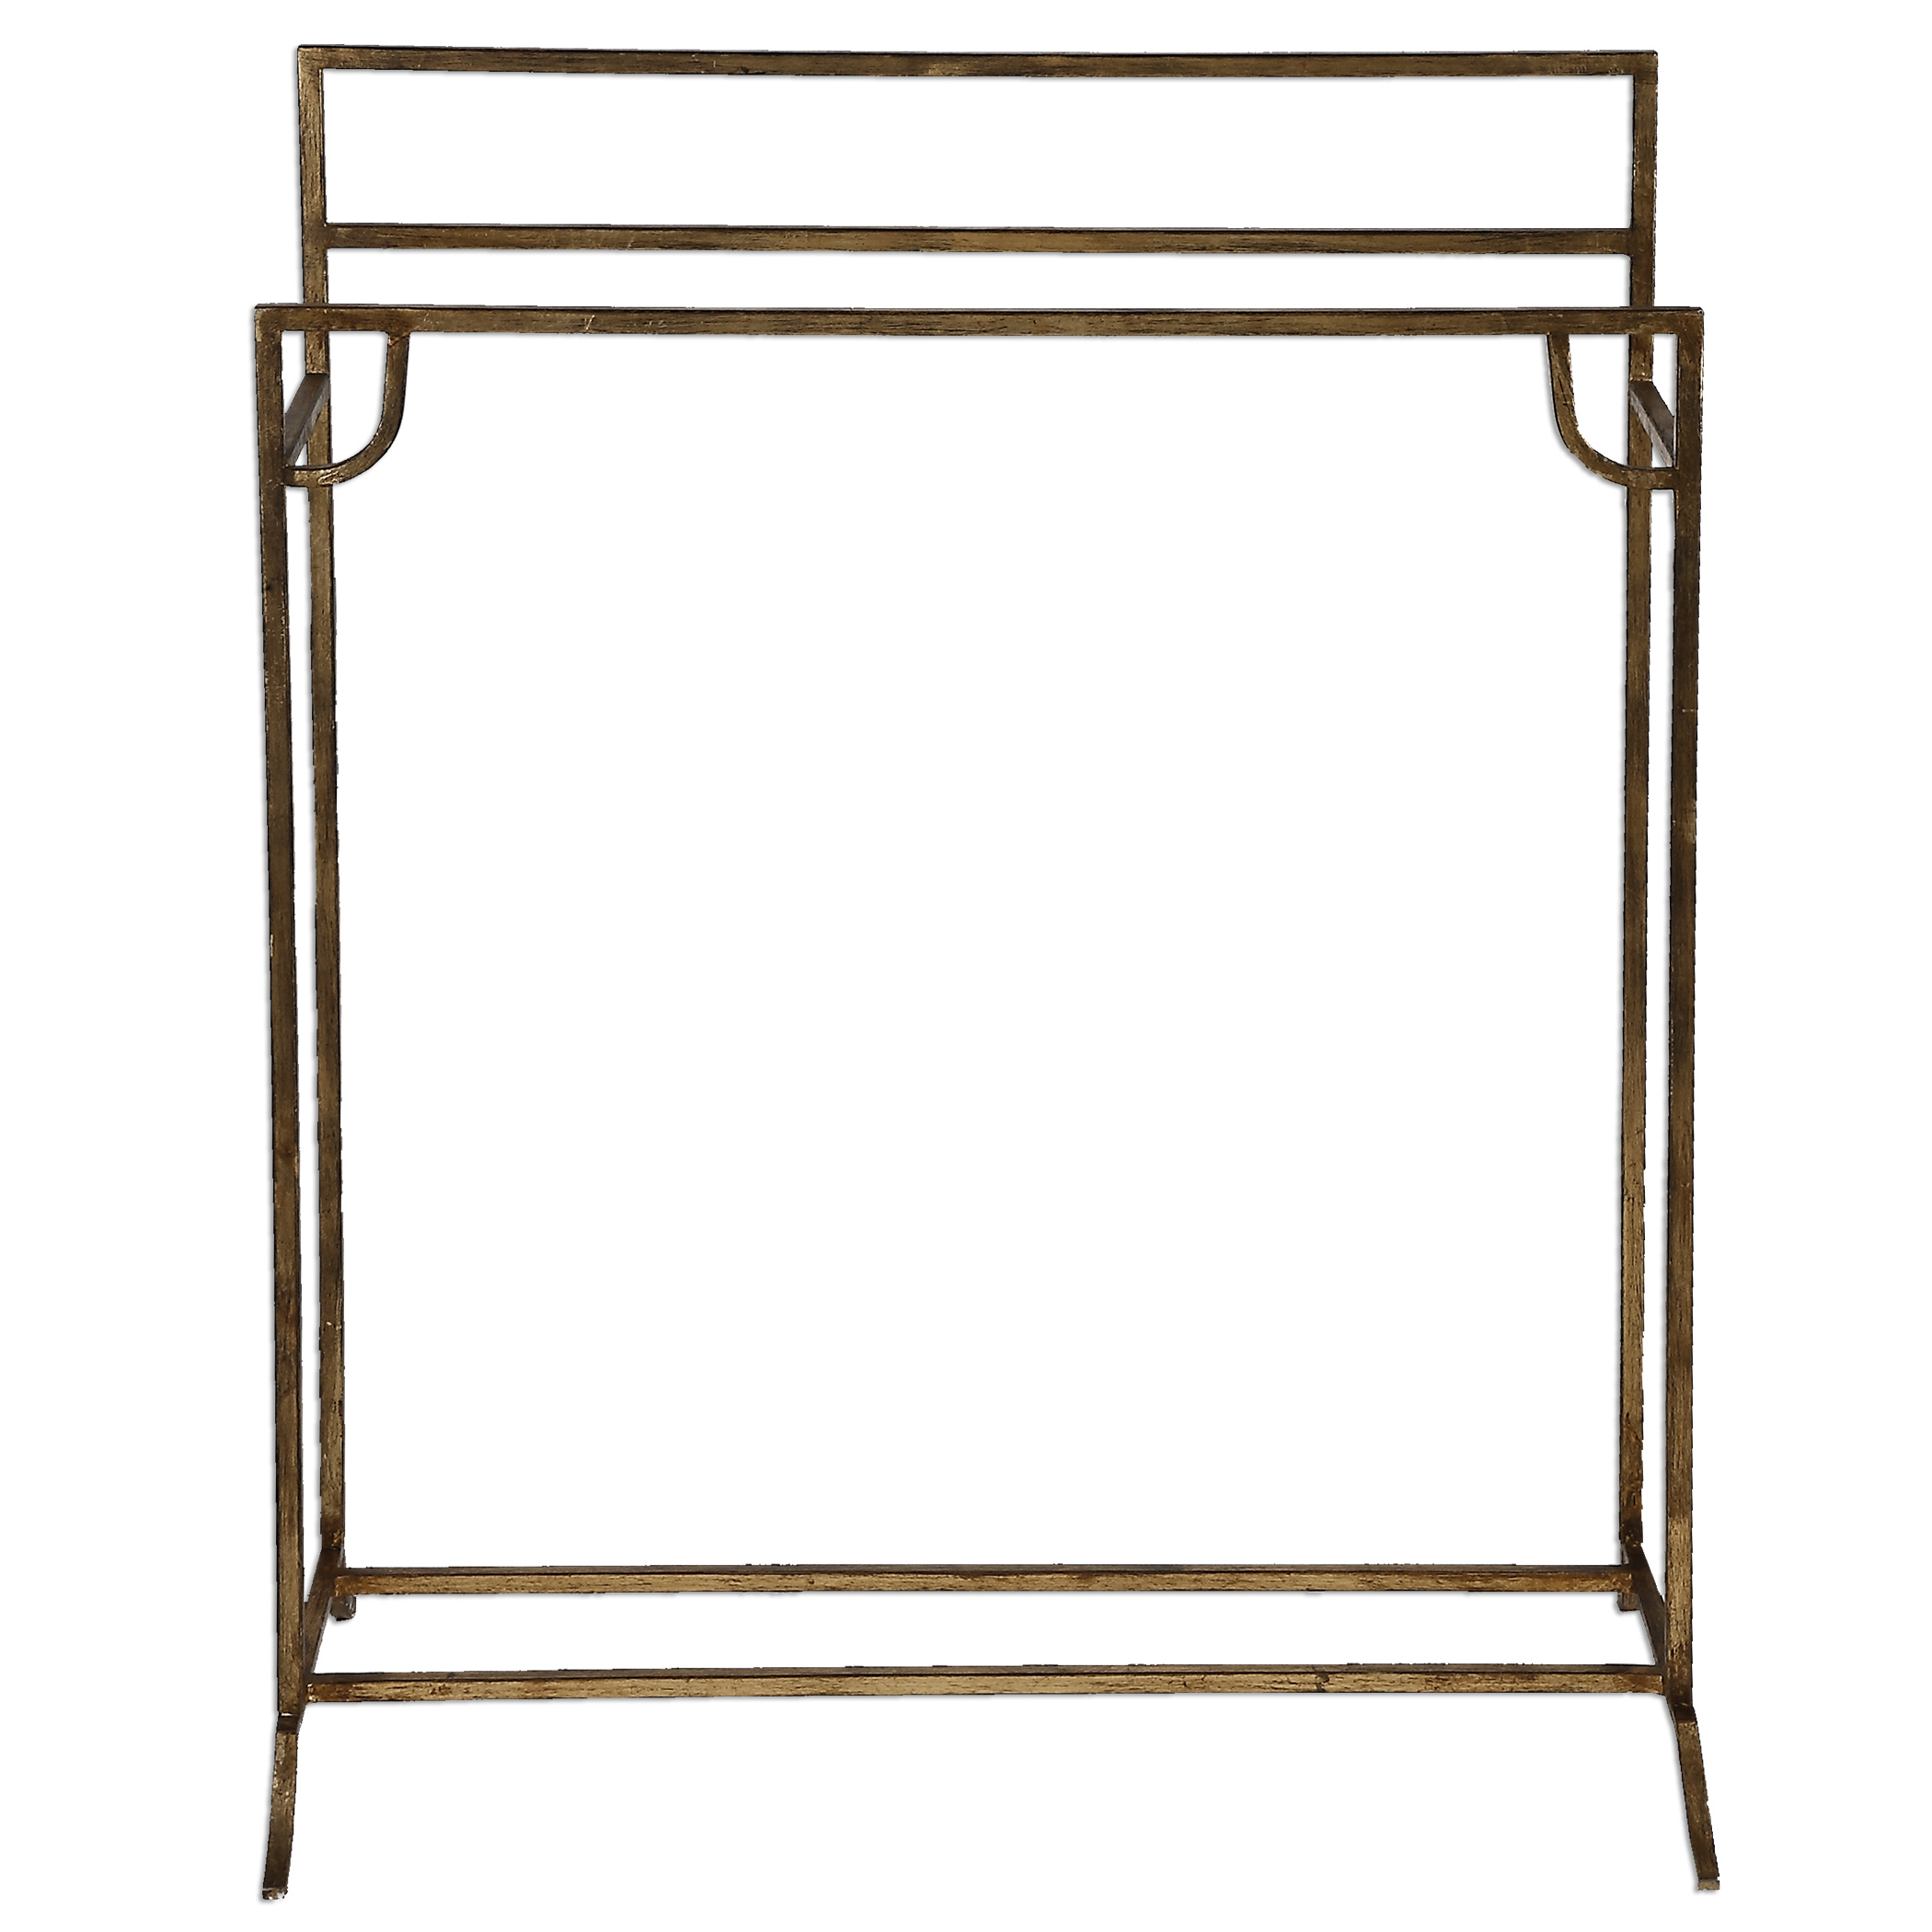 Uttermost Accent Furniture Perico Gold Towel Stand - Item Number: 24544